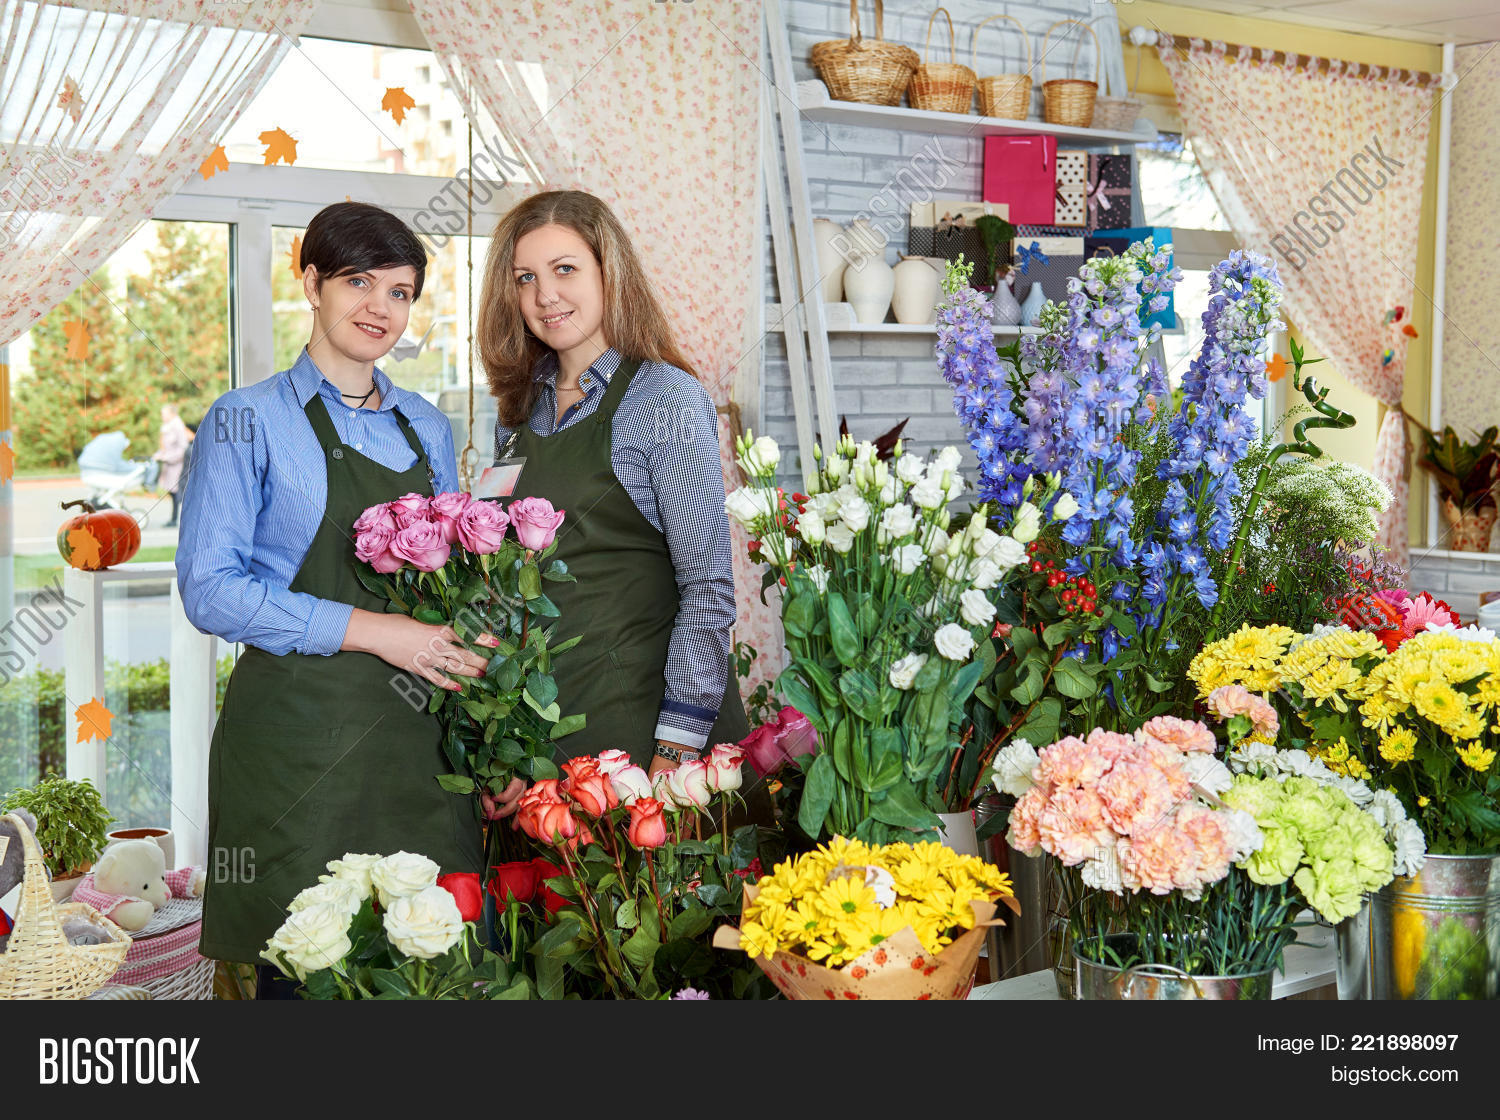 Women flower sellers image photo free trial bigstock women flower sellers two attractive young women working in flower shop and enjoying in beautiful izmirmasajfo